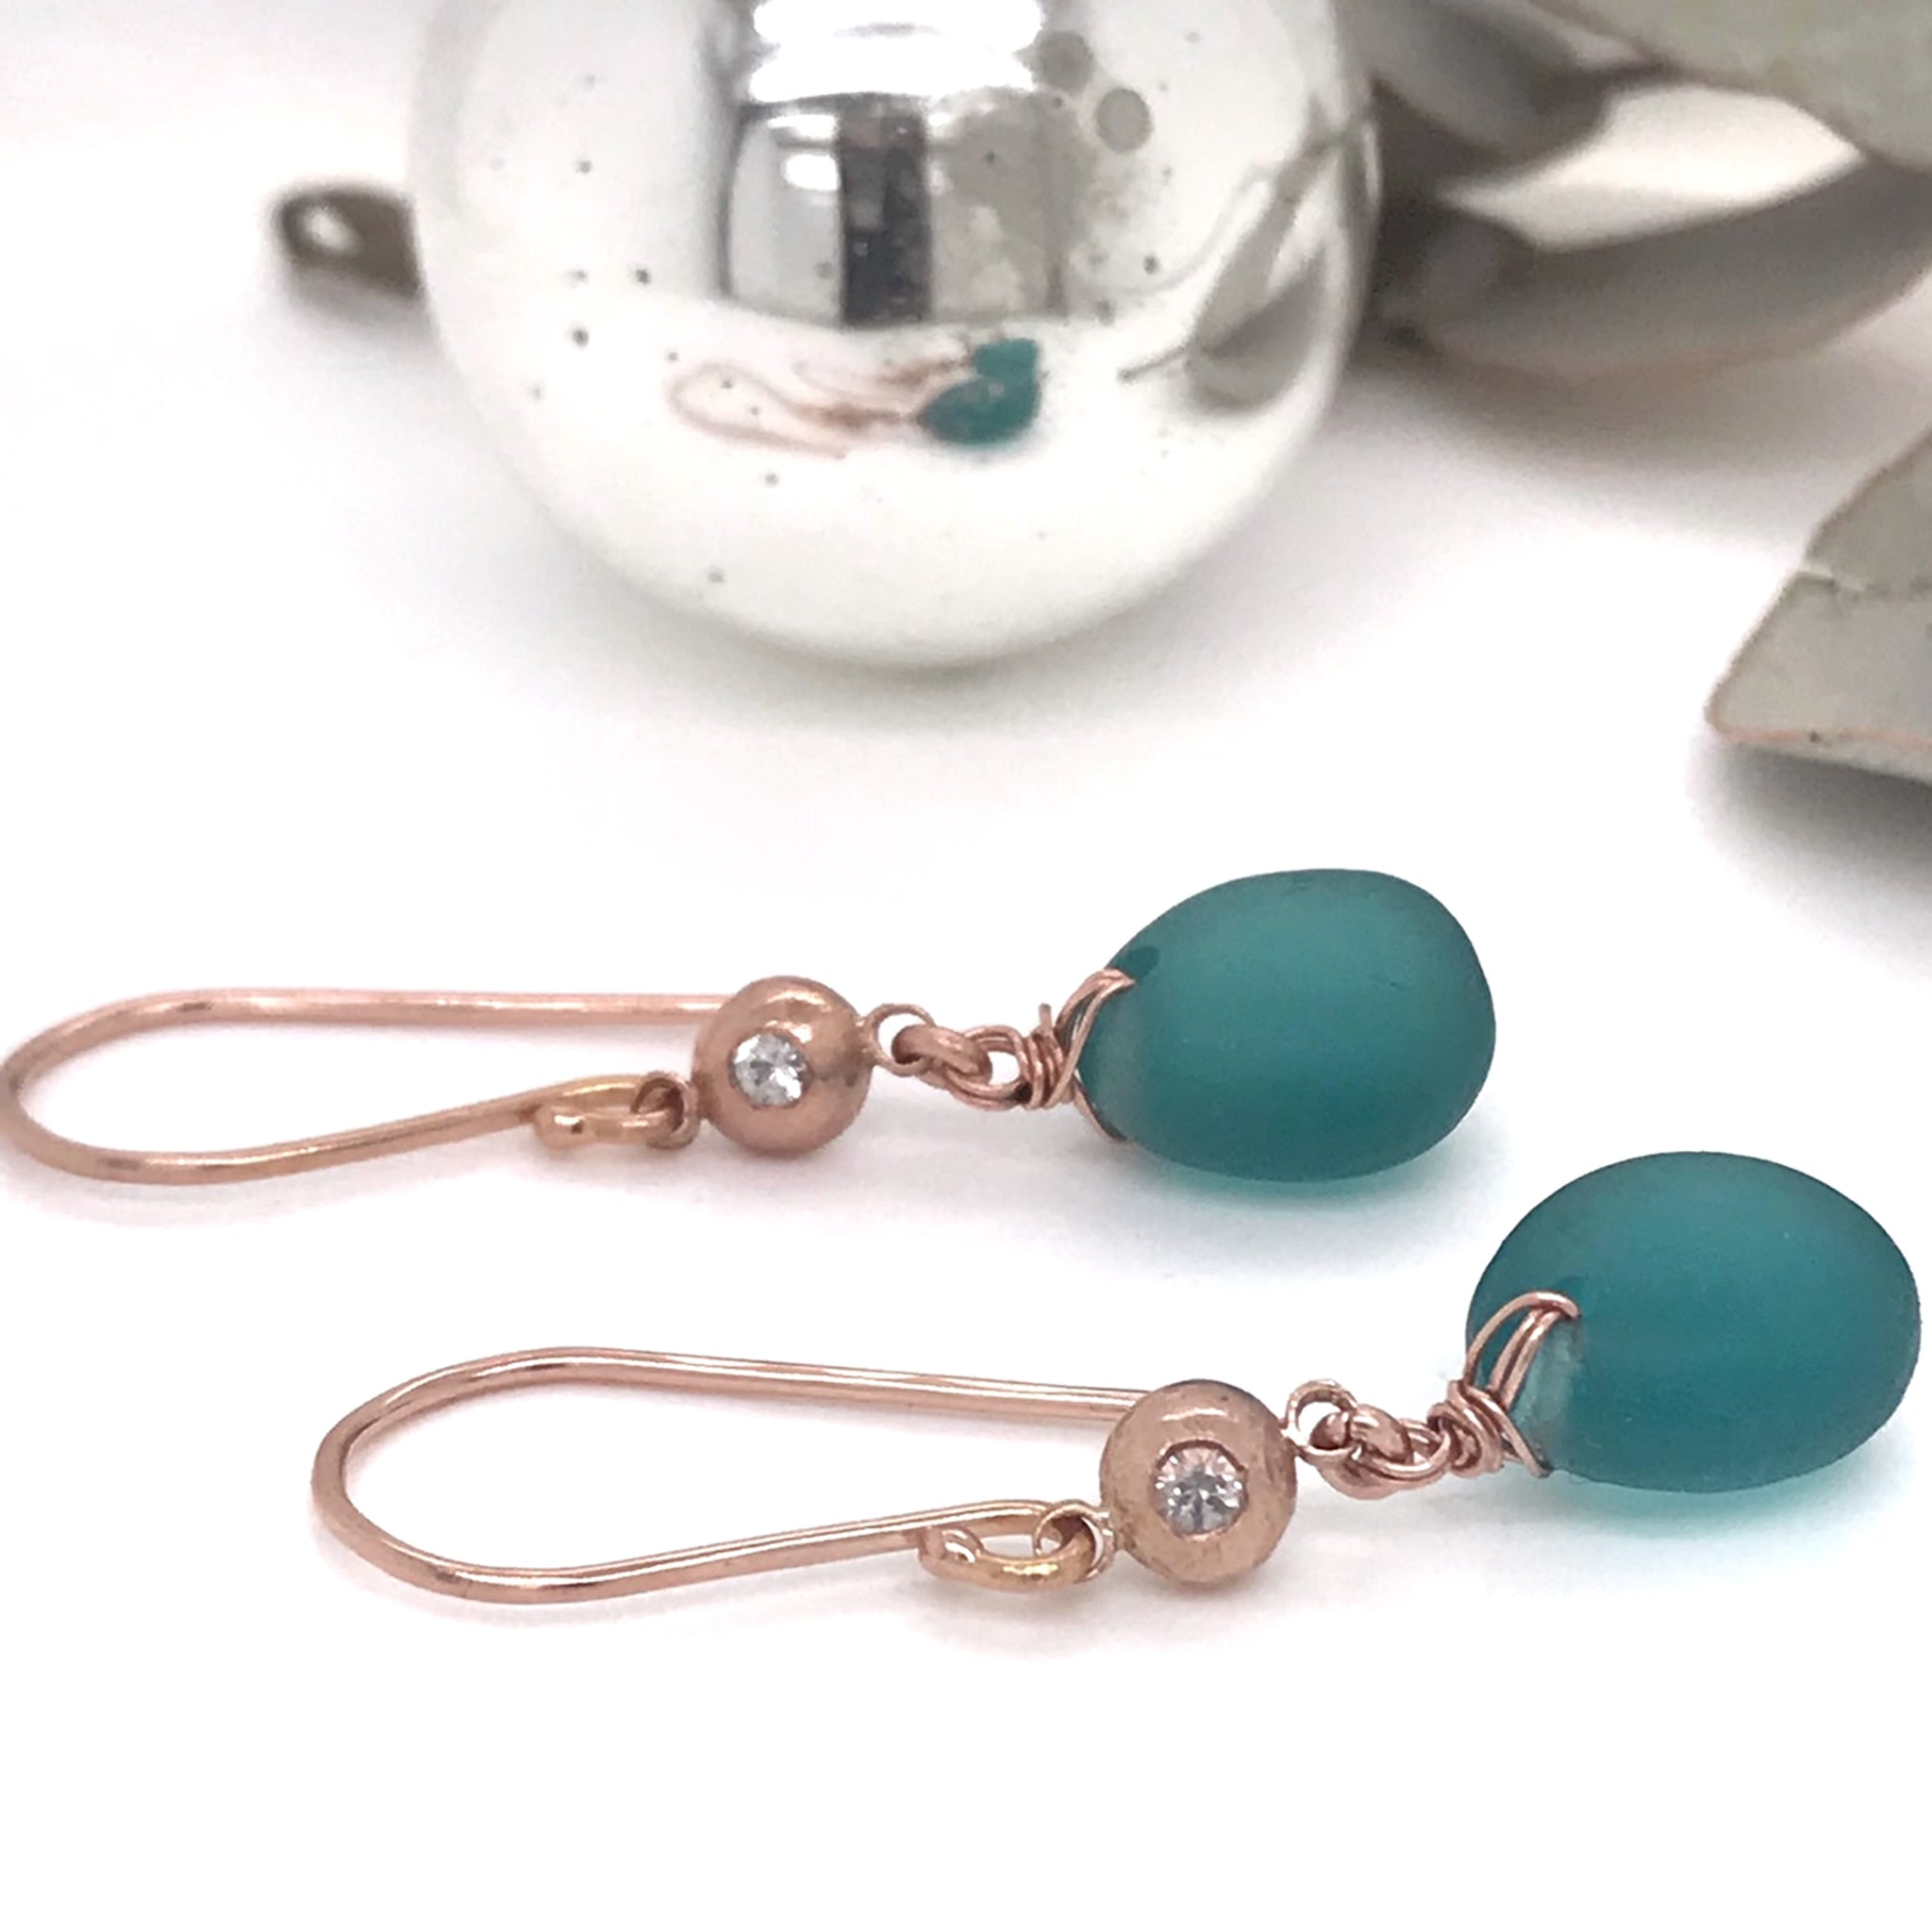 rose-gold-earrings-with-teal-sea-glass_-14k-rose-gold-pebble-charms-and-white-sapphires-kriket-broadhurst-jewelry-Sydney